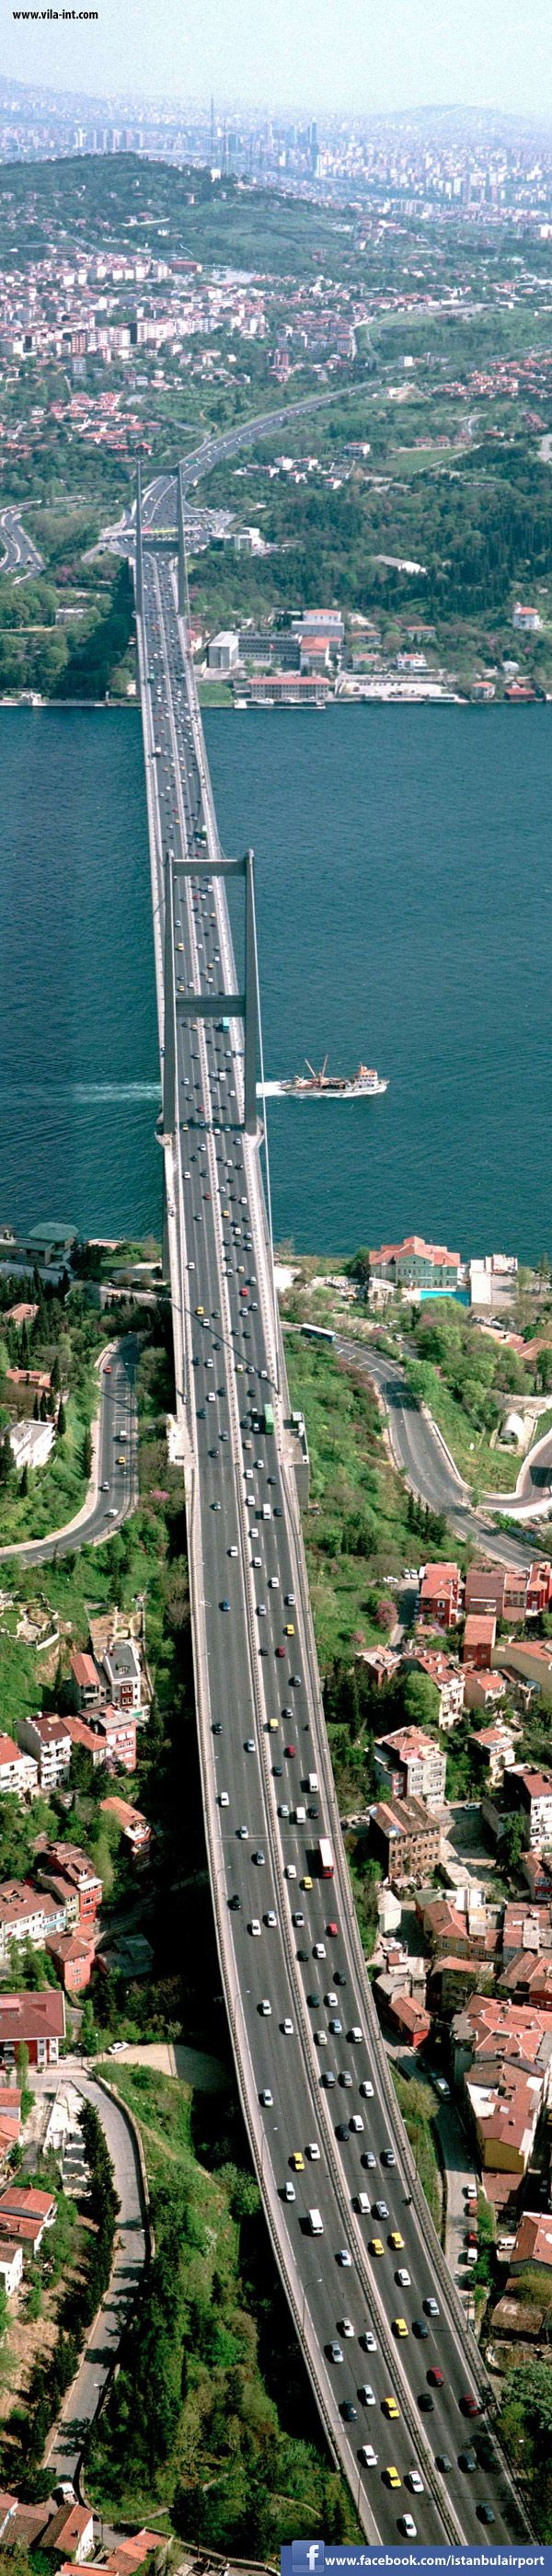 Bosphorus Bridge Istanbul-TURKEY.. It is 1,510 m (4,954 ft) long with a deck width of 39 m (128 ft). The distance between the towers (main span) is 1,074 m (3,524 ft) and their height over road level is 105 m (344 ft).